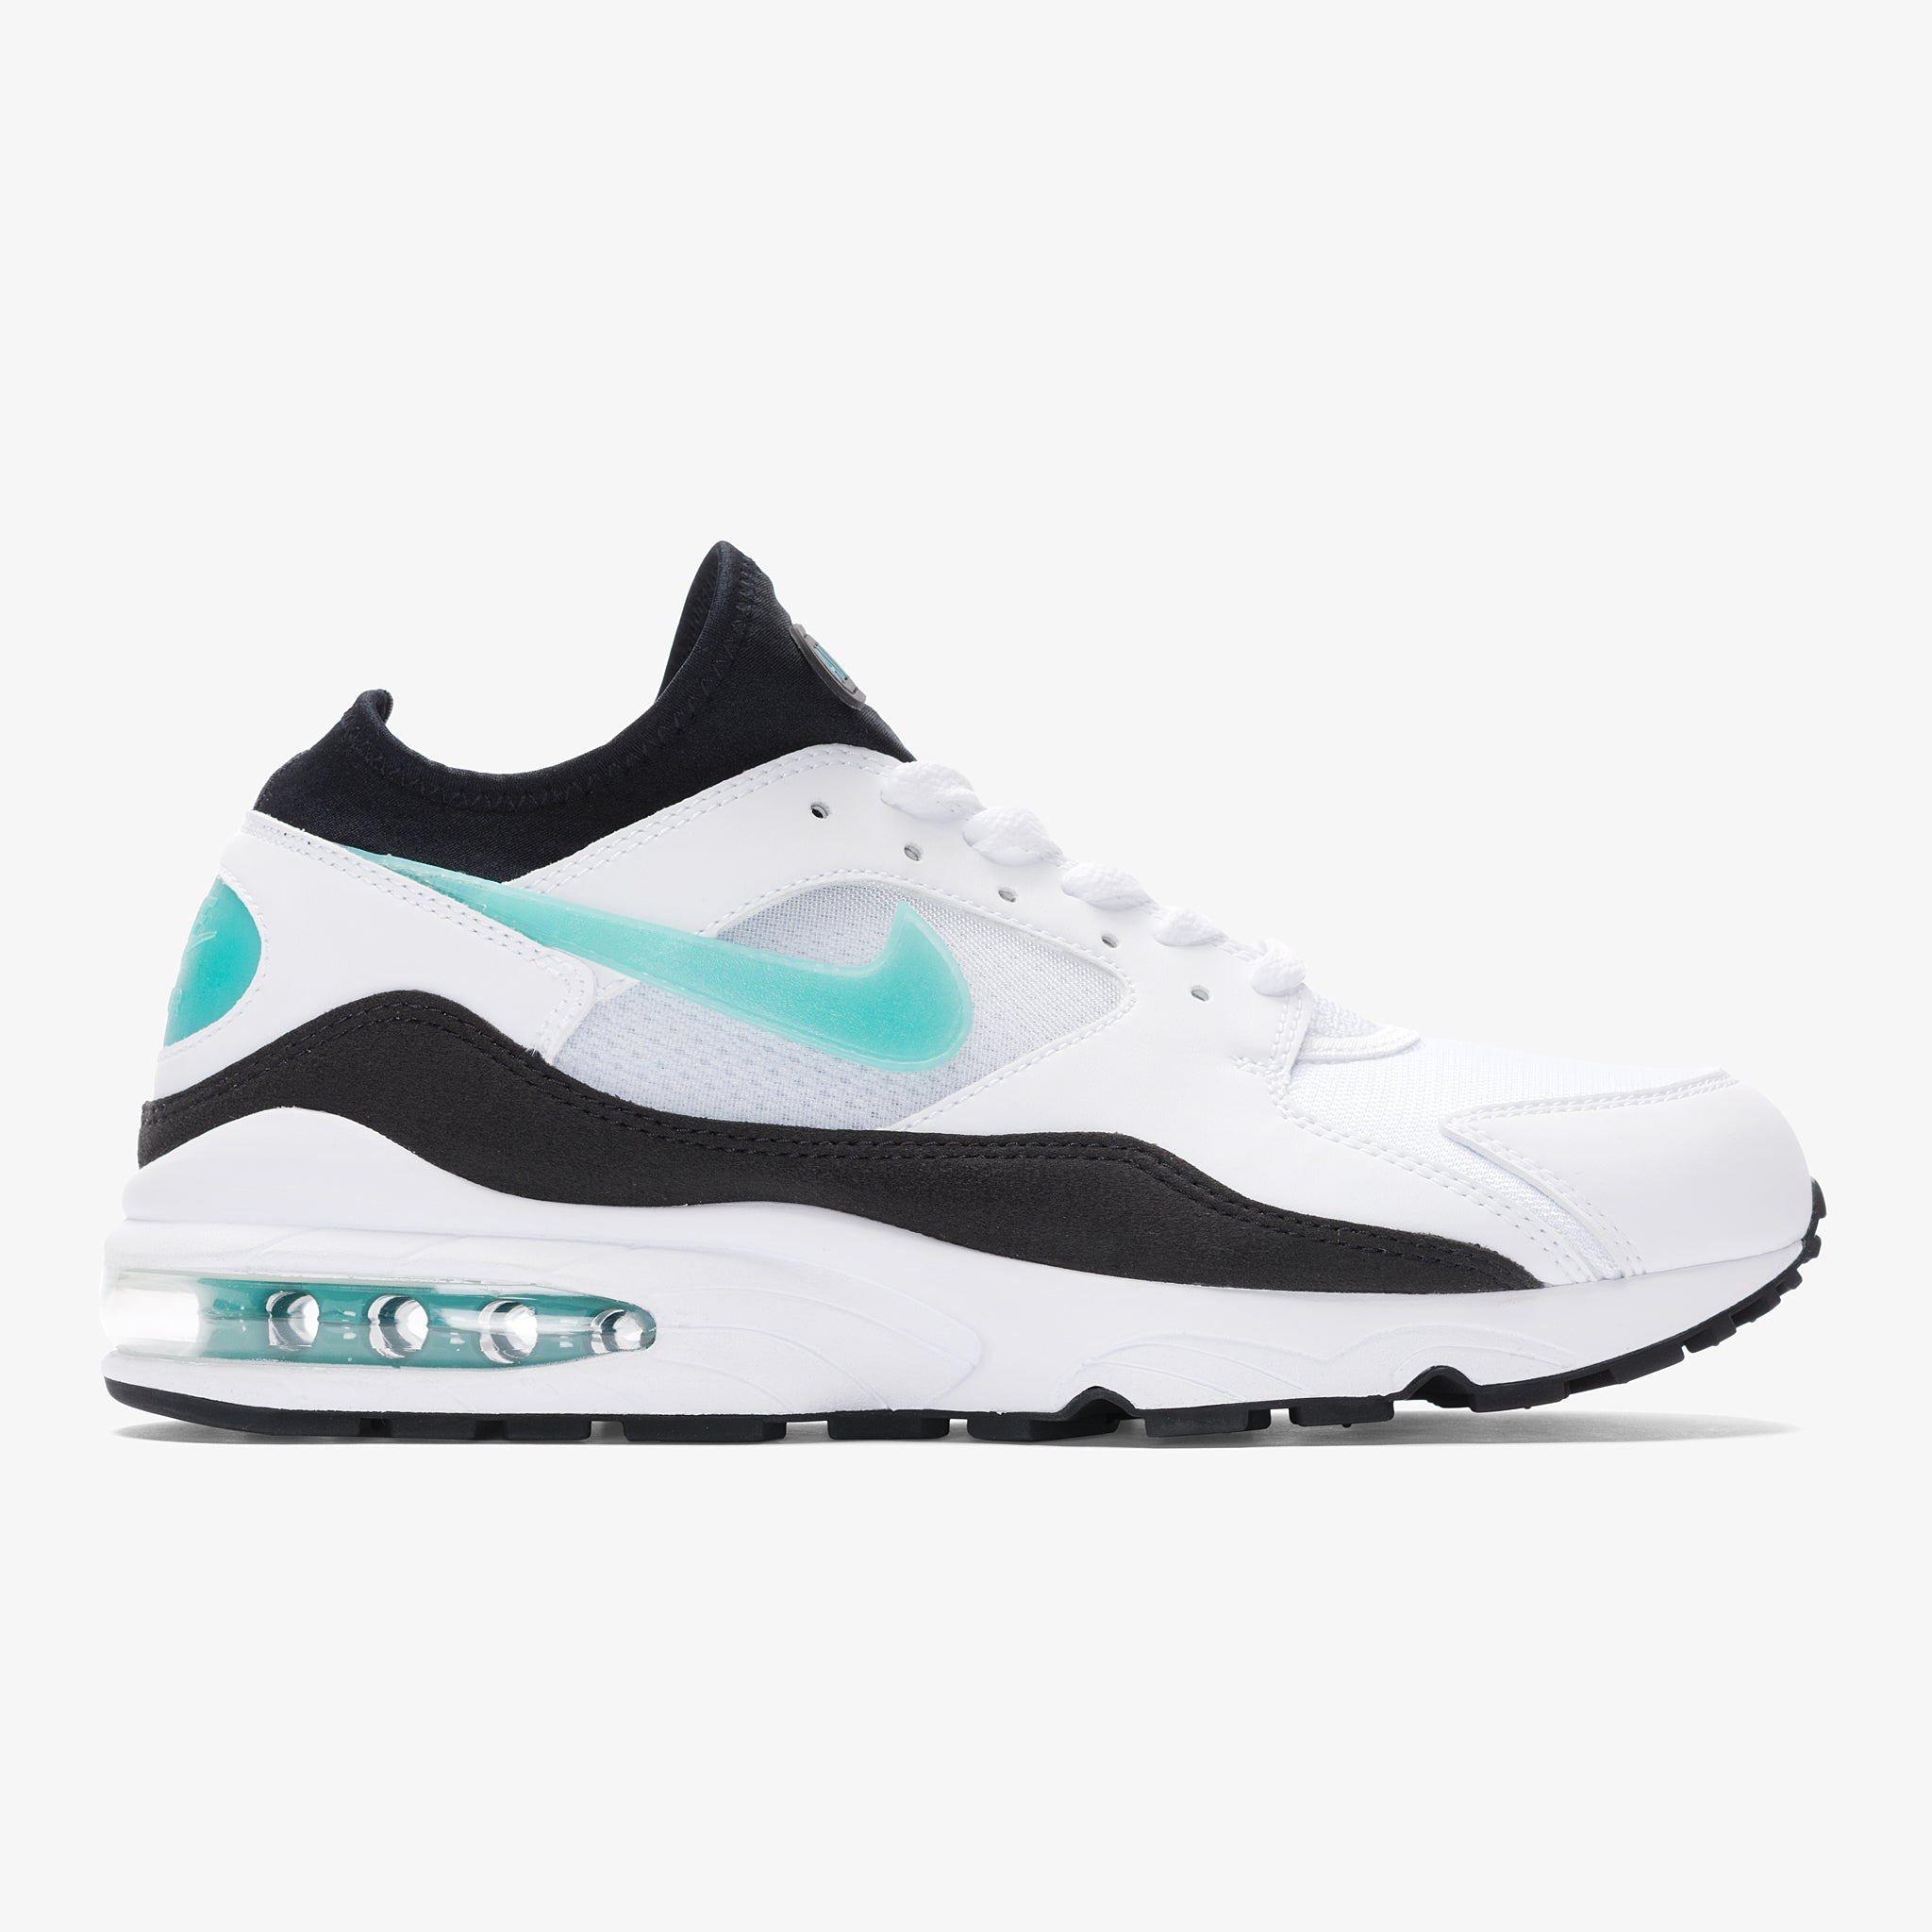 finest selection 7d751 6d058 Womens Air Max 93 (Aquamarine) – Bows and Arrows